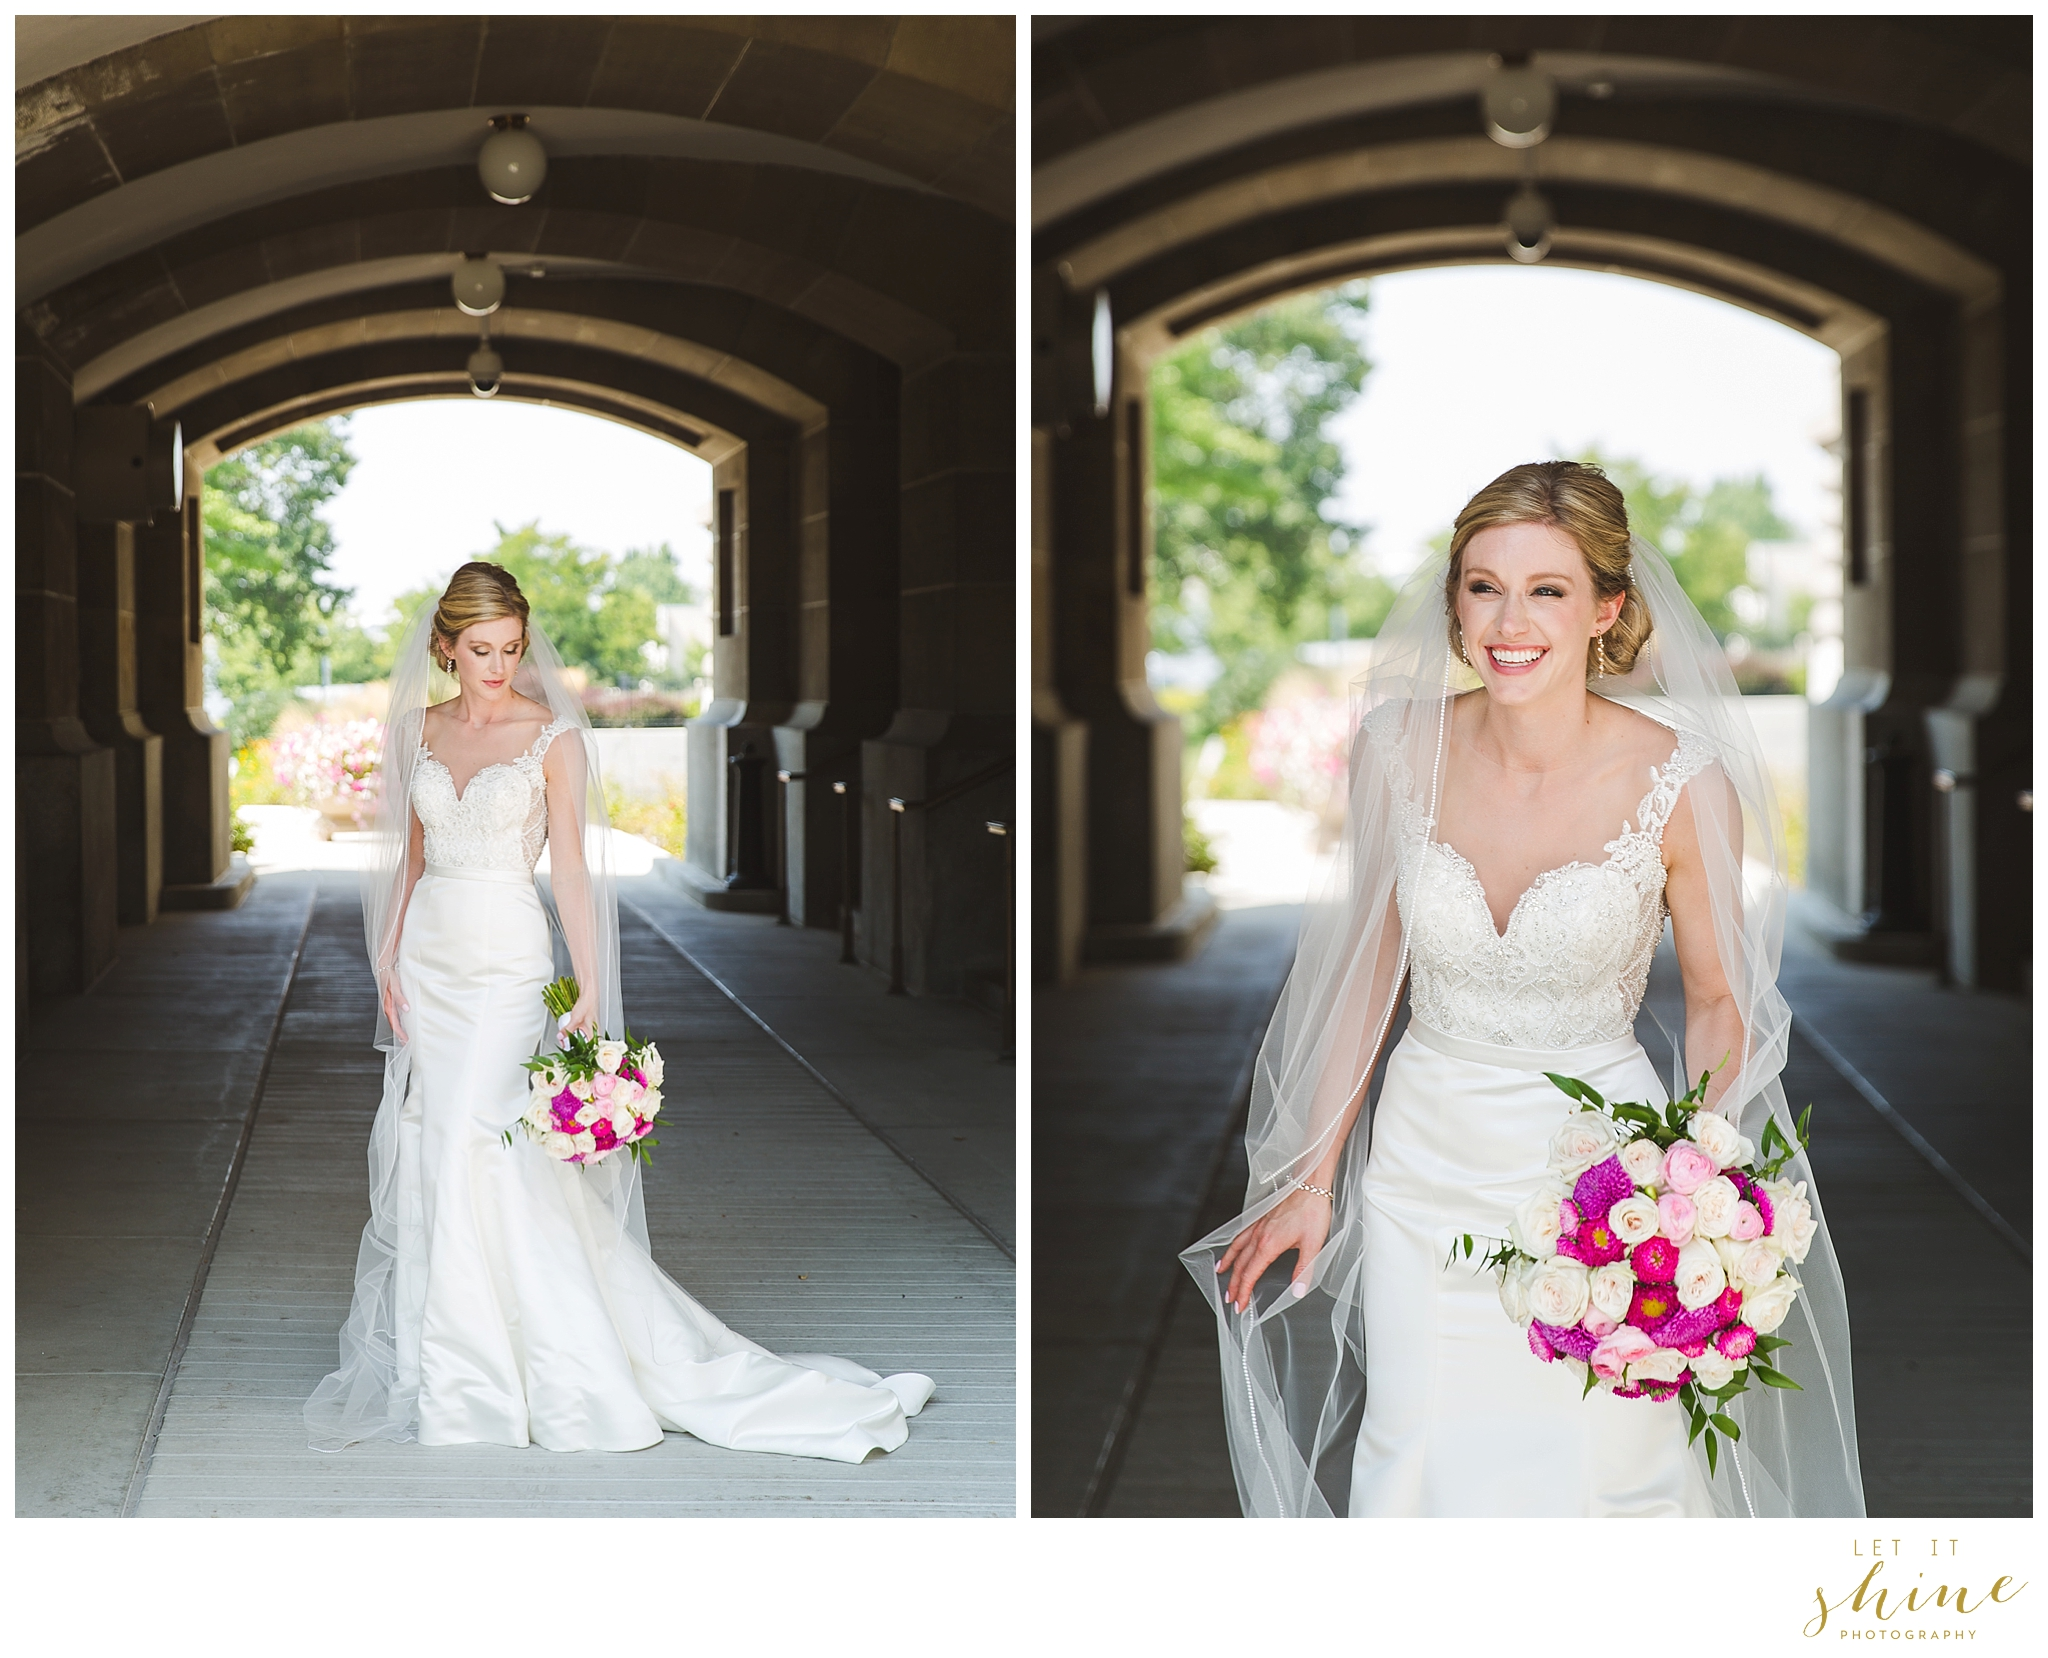 The Grove Hotel Boise Wedding 2017 Let it Shine Photography-8595.jpg